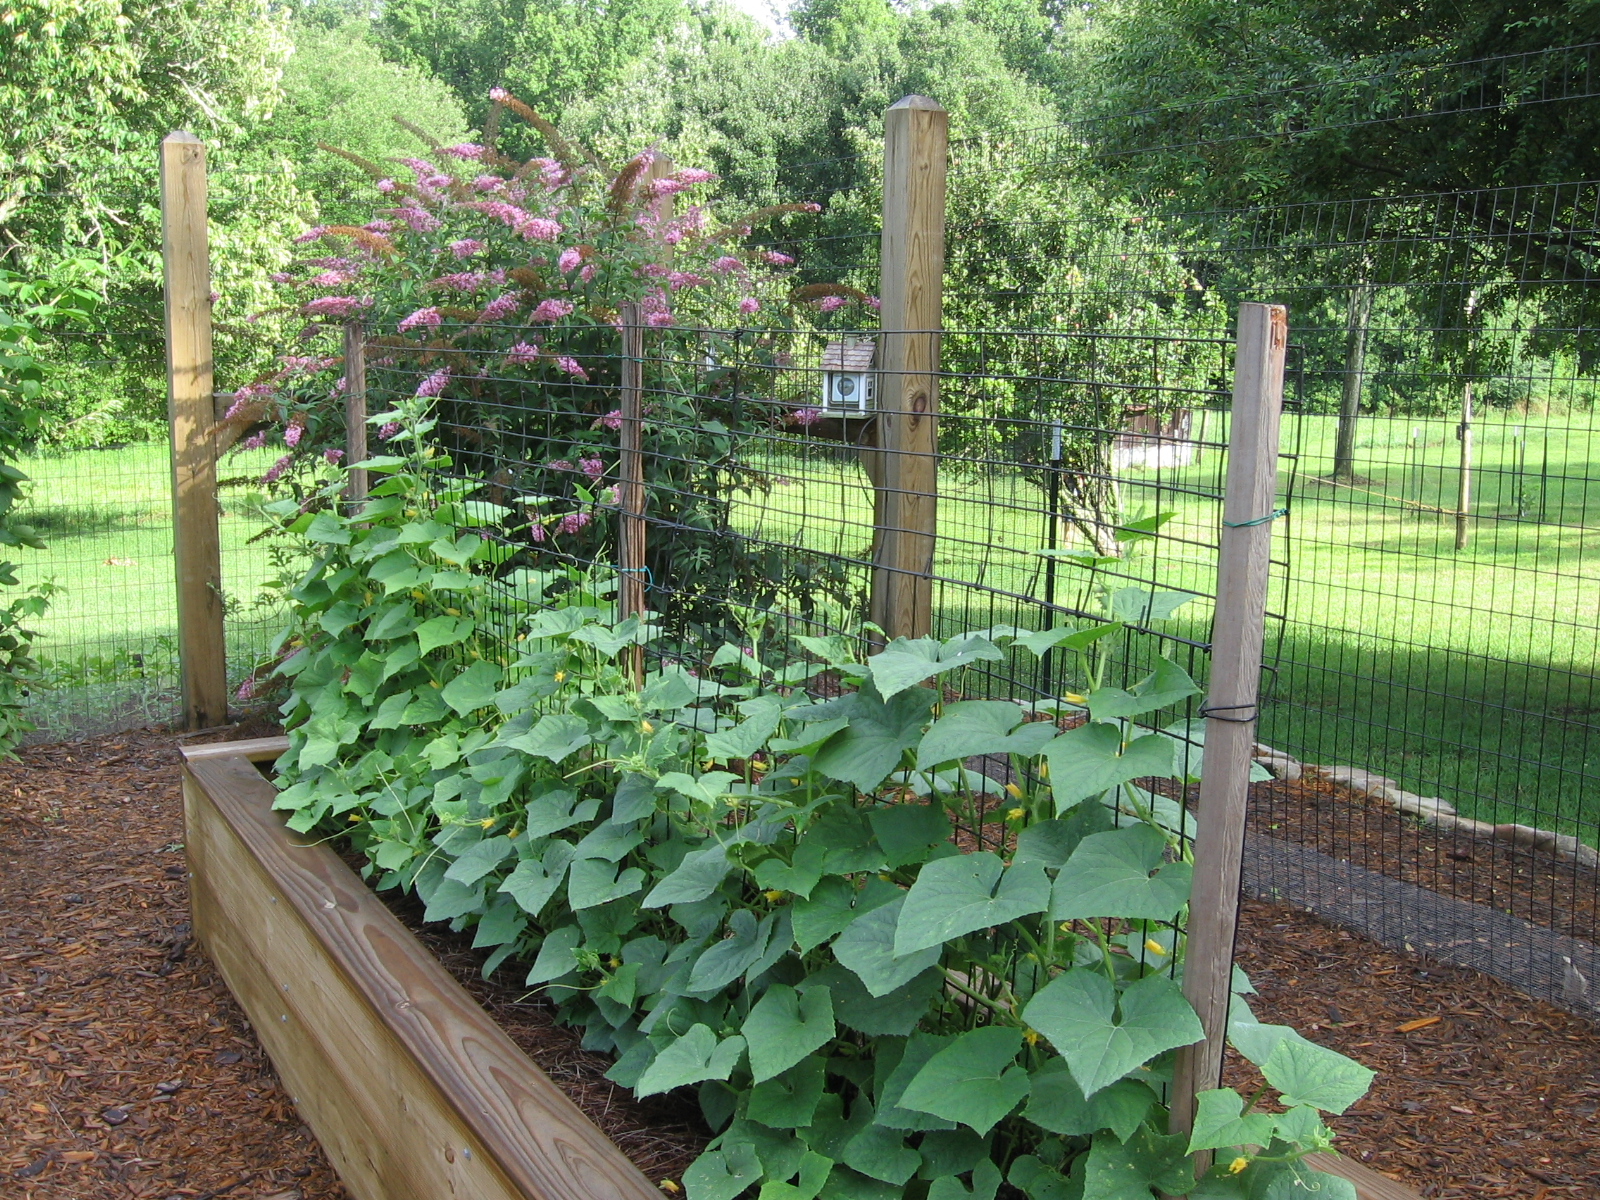 Cucumbers growing on wire fencing to conserve space these are